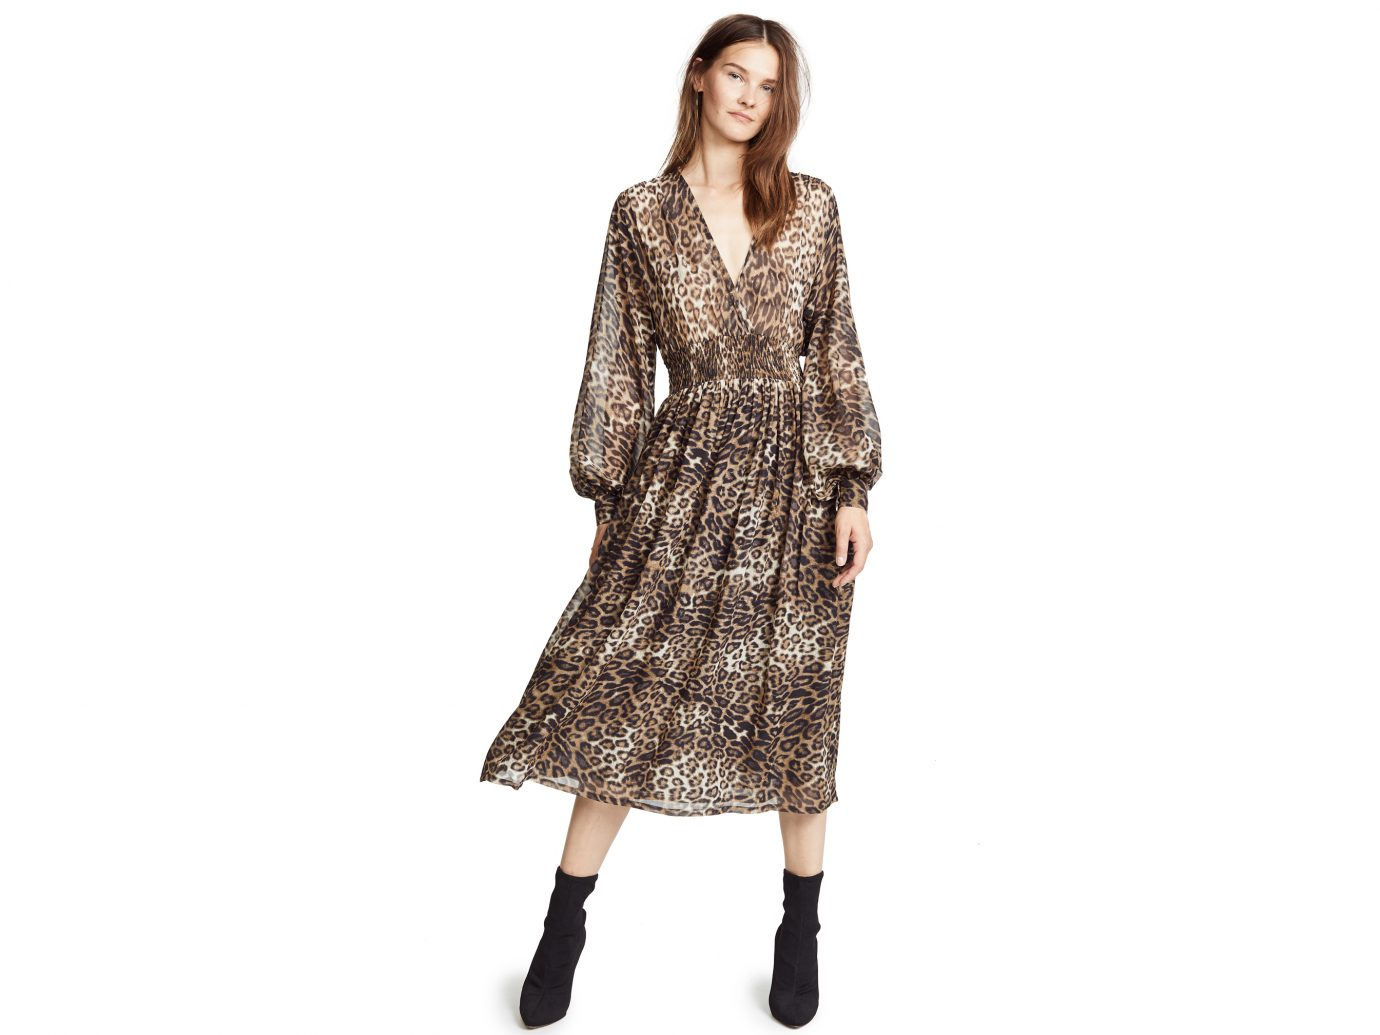 Nili Lotan Brienne Dress